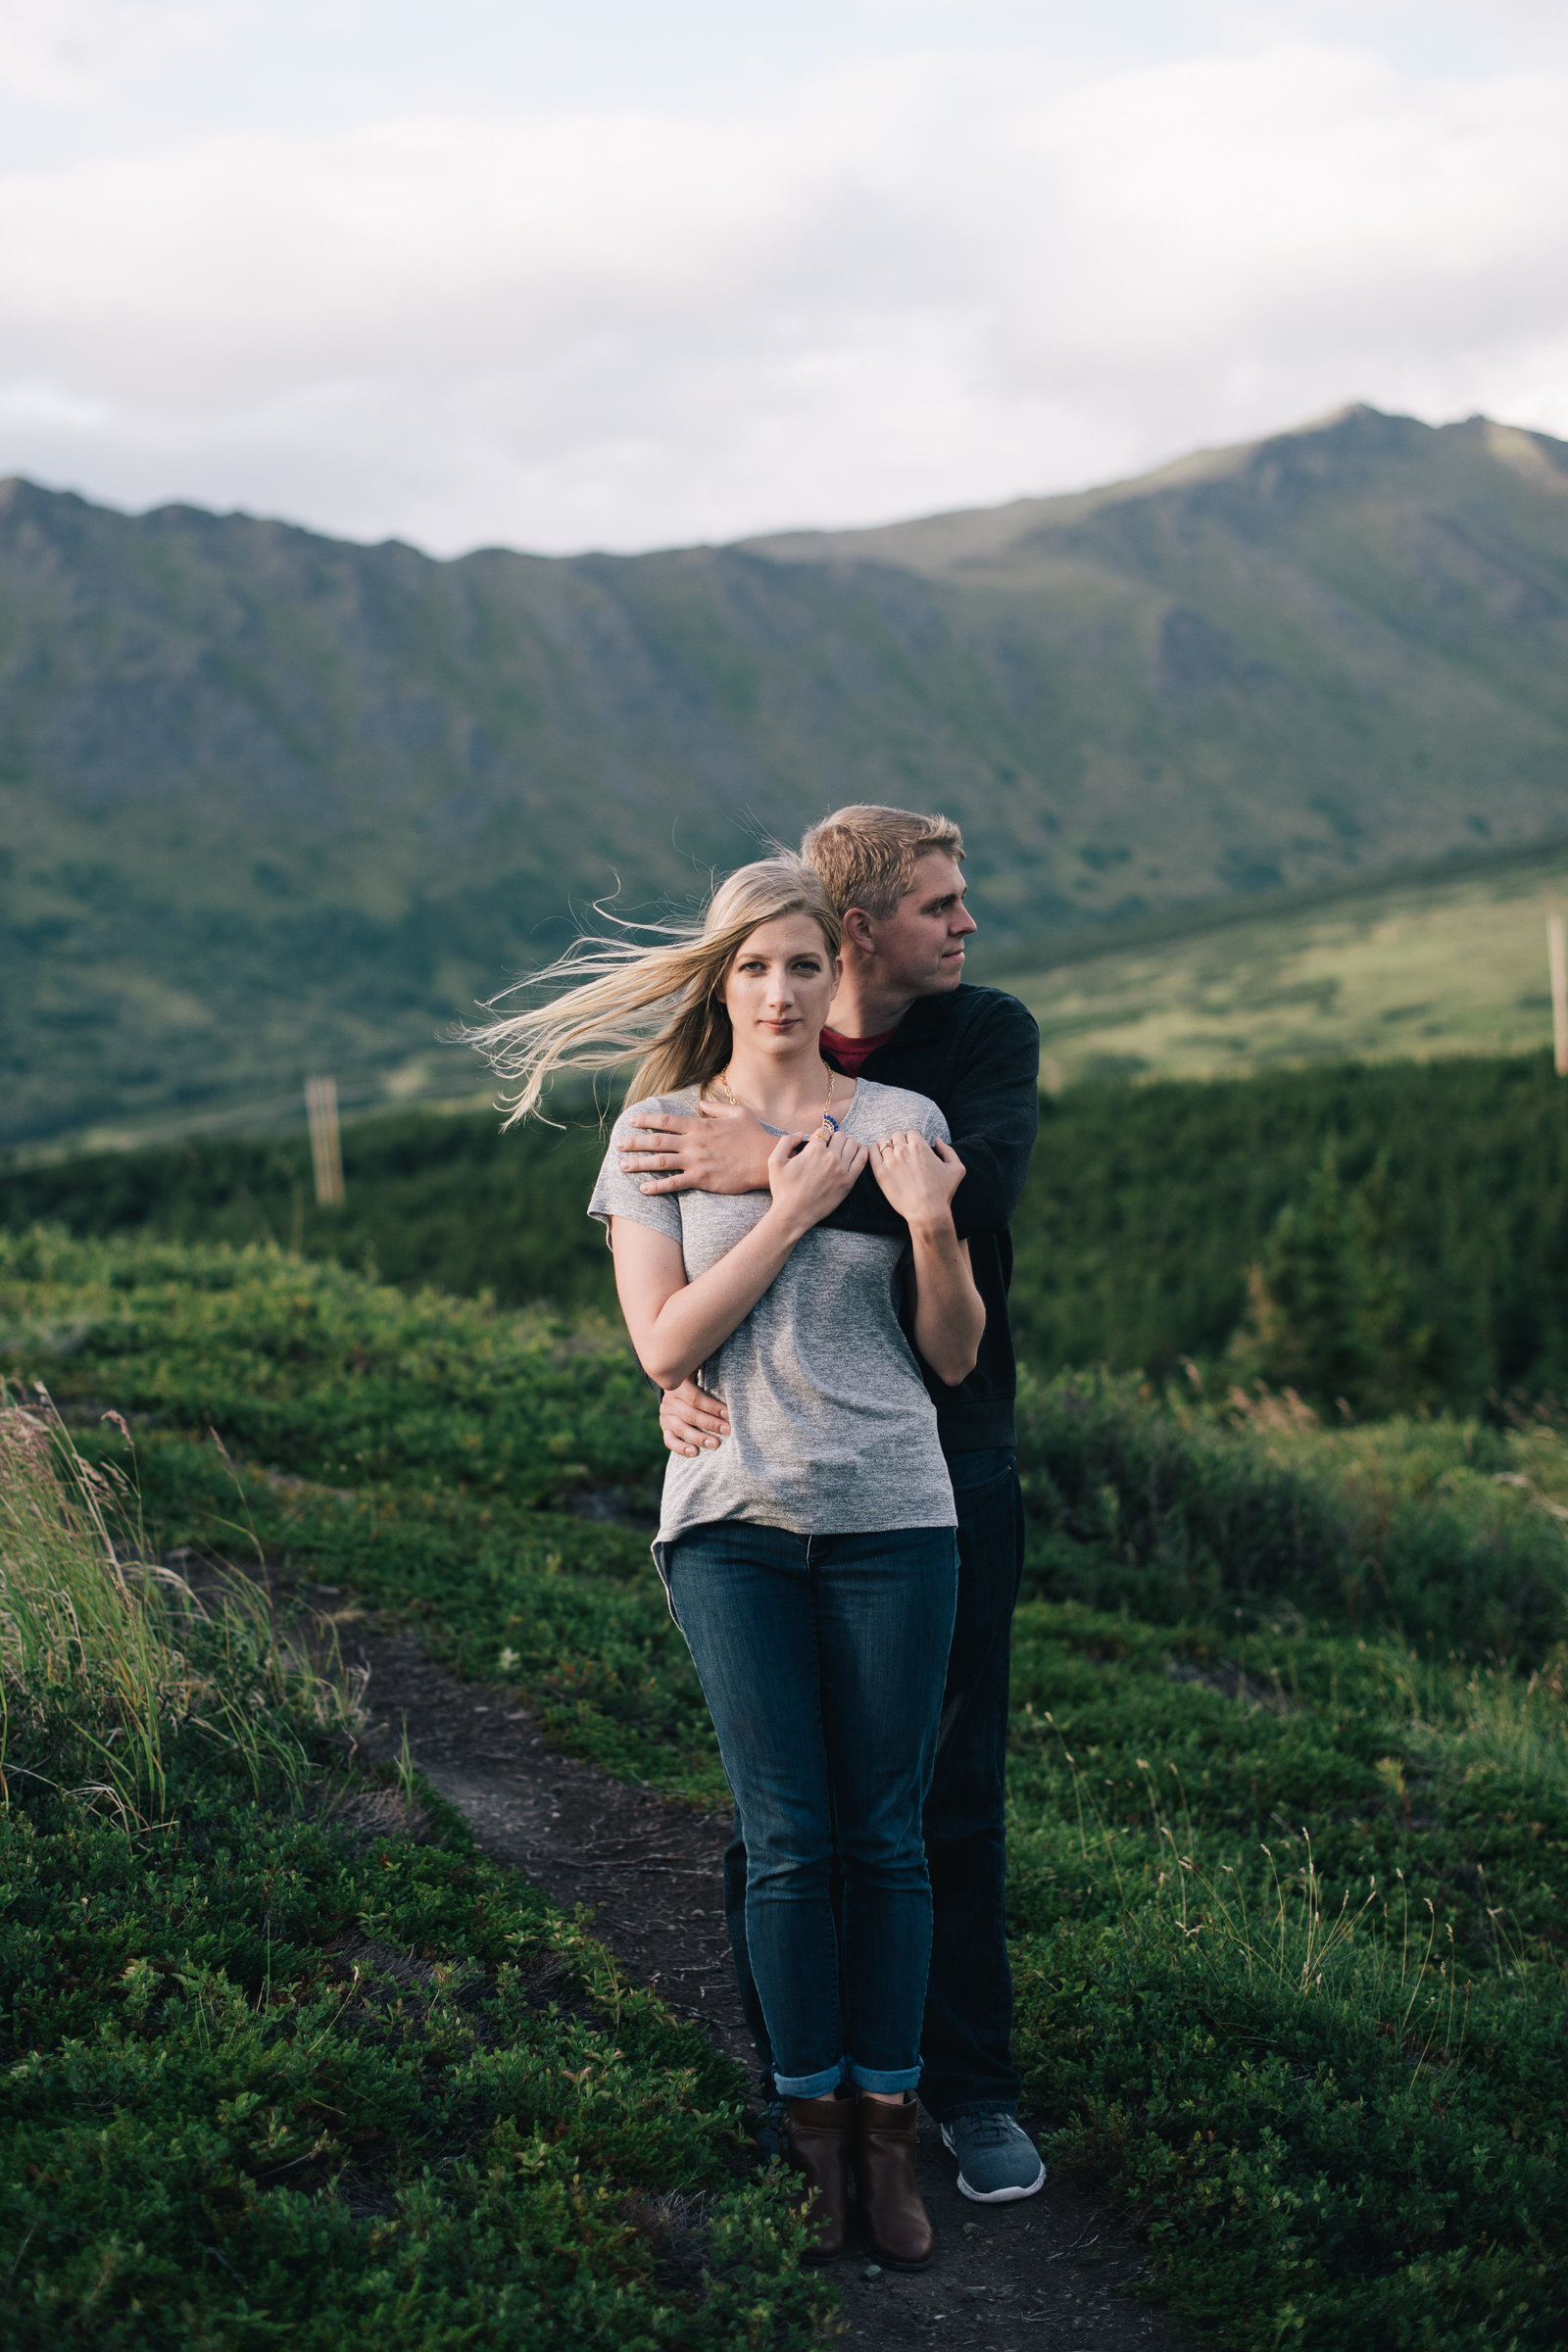 032_Erica Rose Photography_Anchorage Engagement Photographer